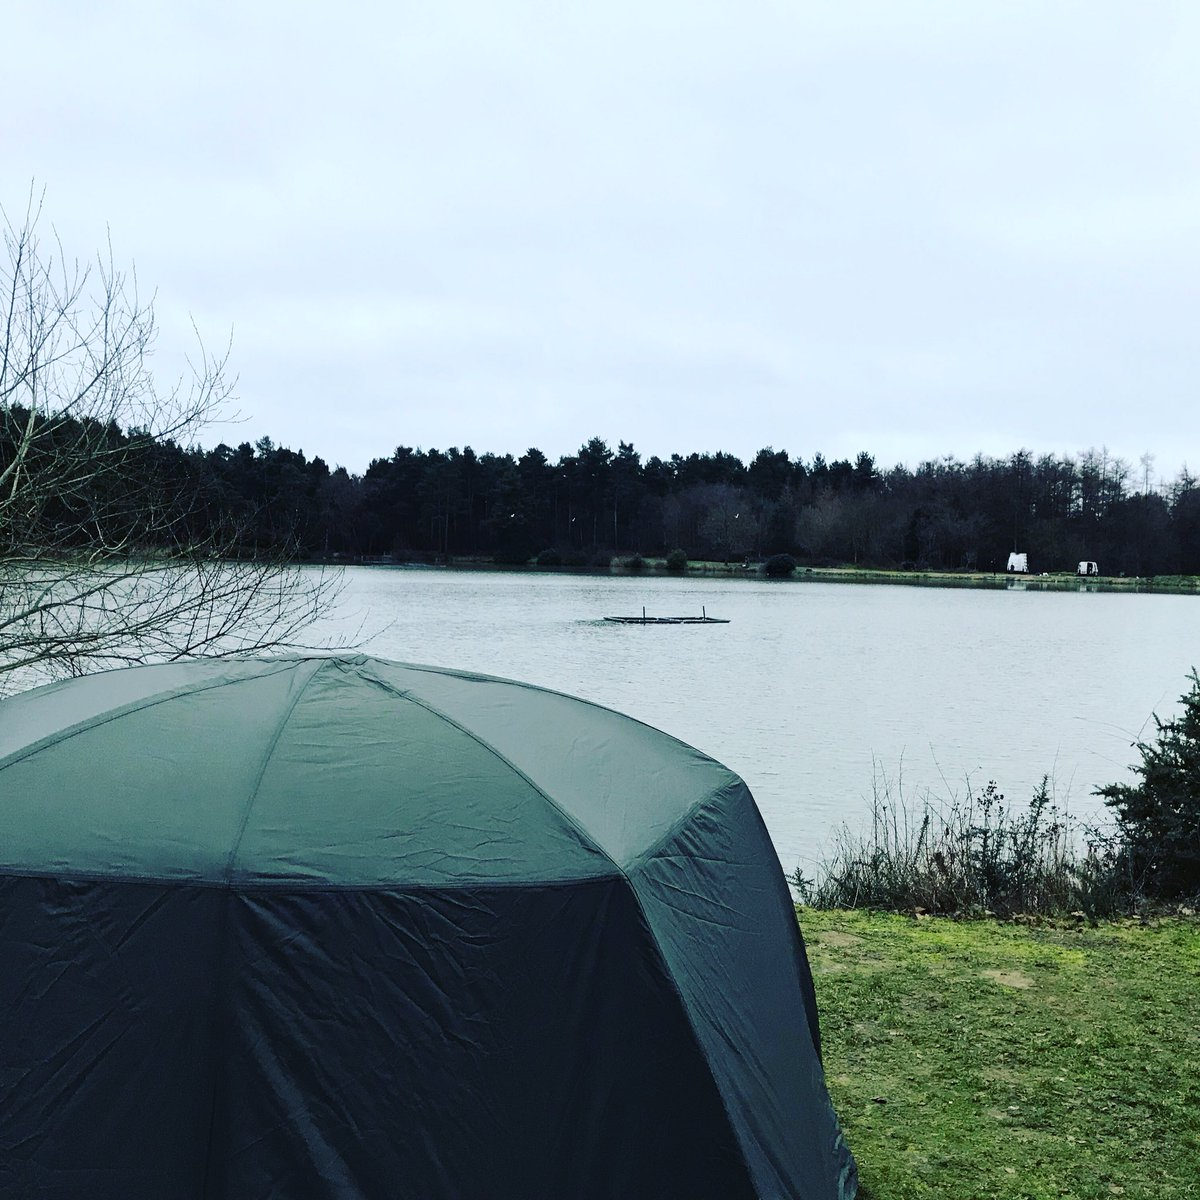 Home for next 36hr #carp #carpfishing #wintercarp #whitevane https://t.co/ABcMKC8q3R